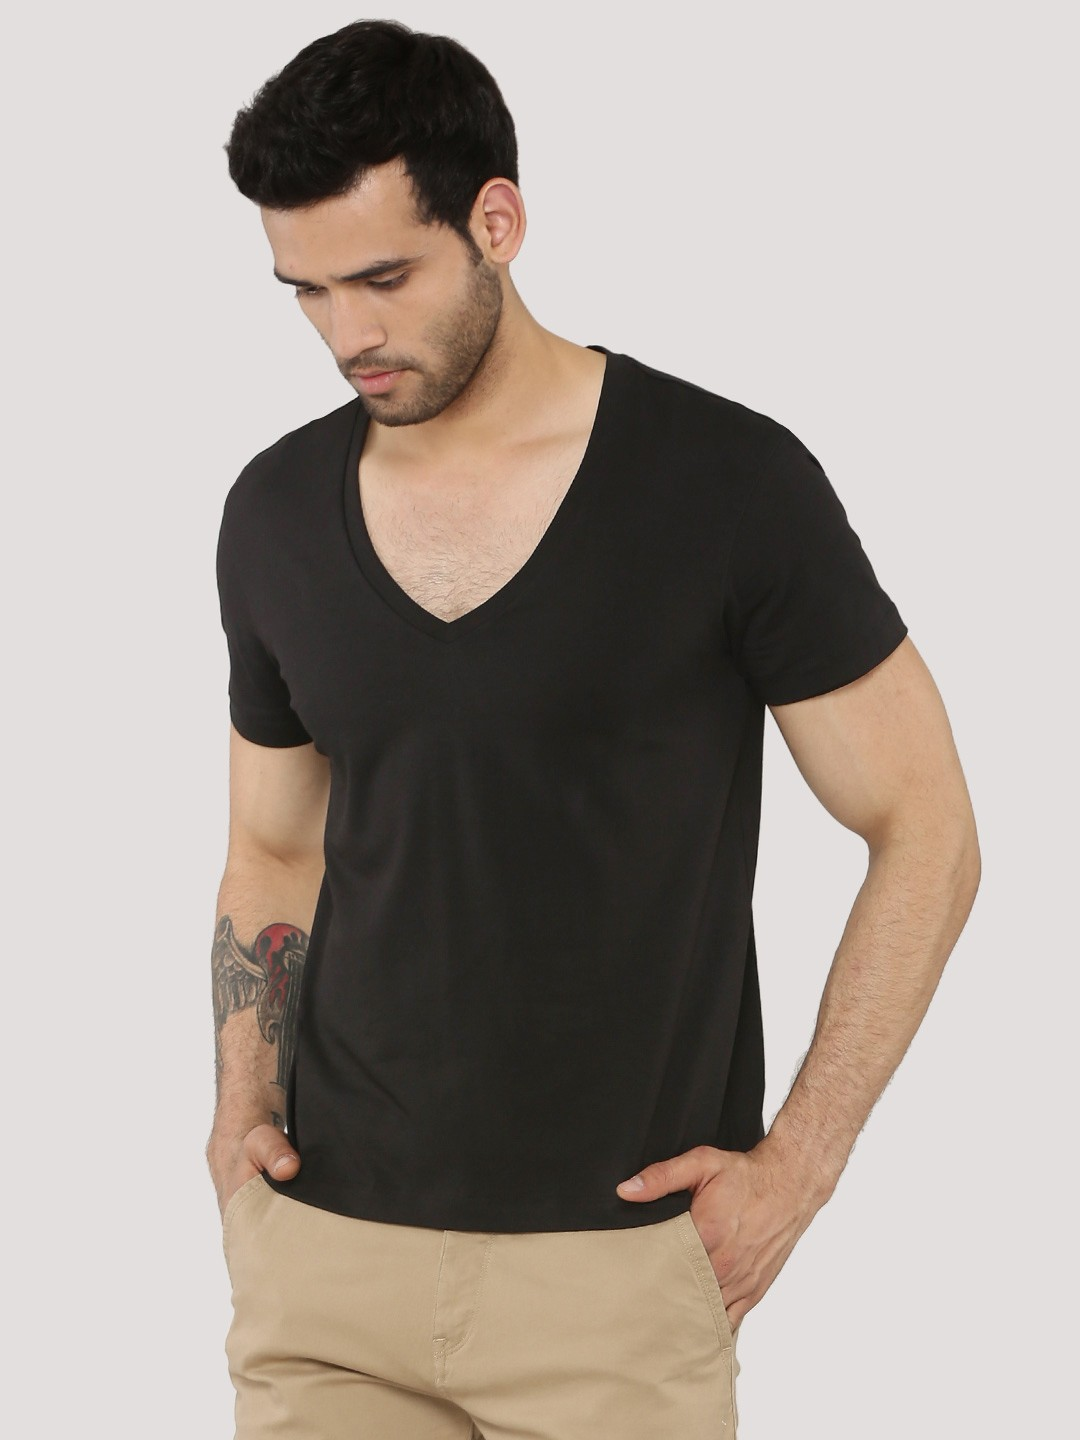 Buy KOOVS Deep V-Neck Muscle Fit T-Shirt For Men - Men's Black T ...